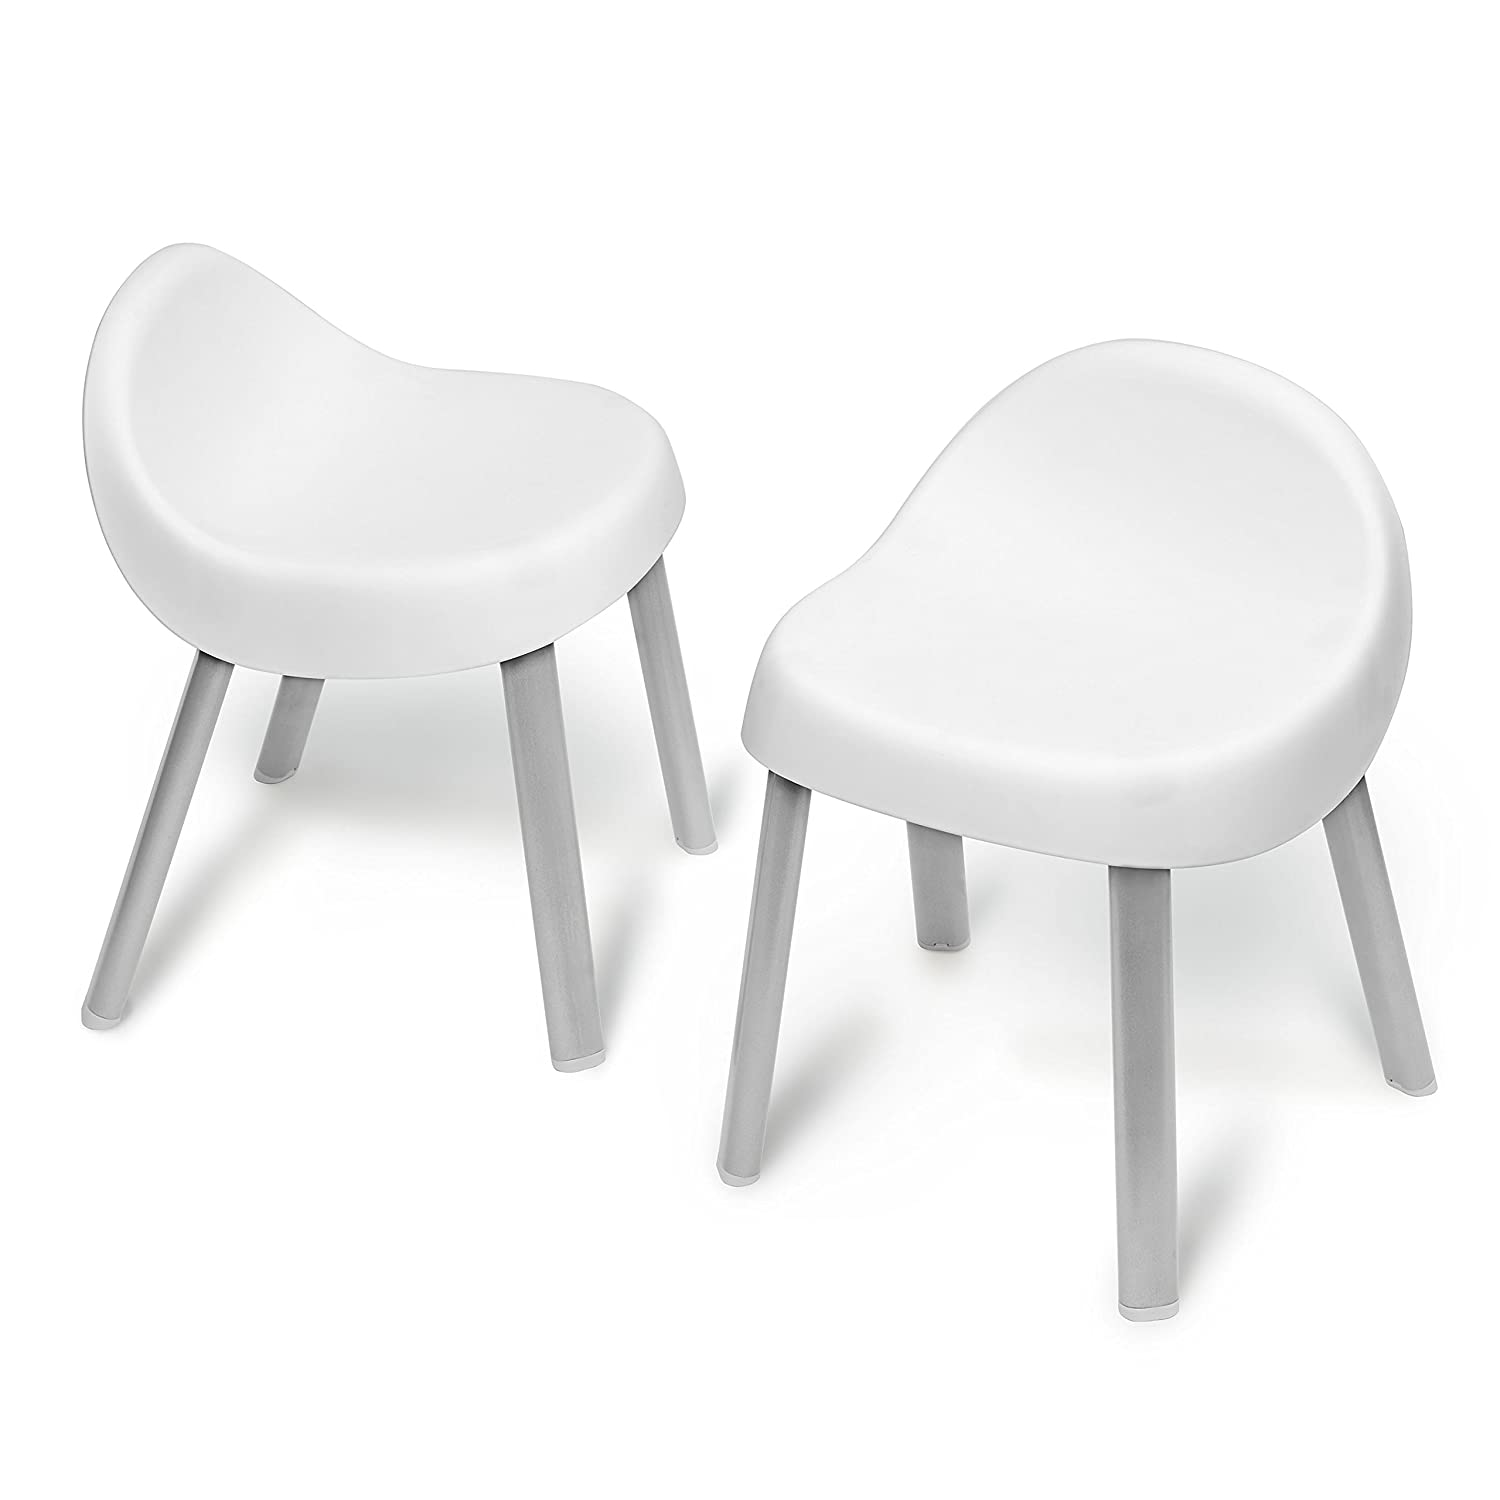 Skip Hop Explore & More Kids Chairs, White 303400